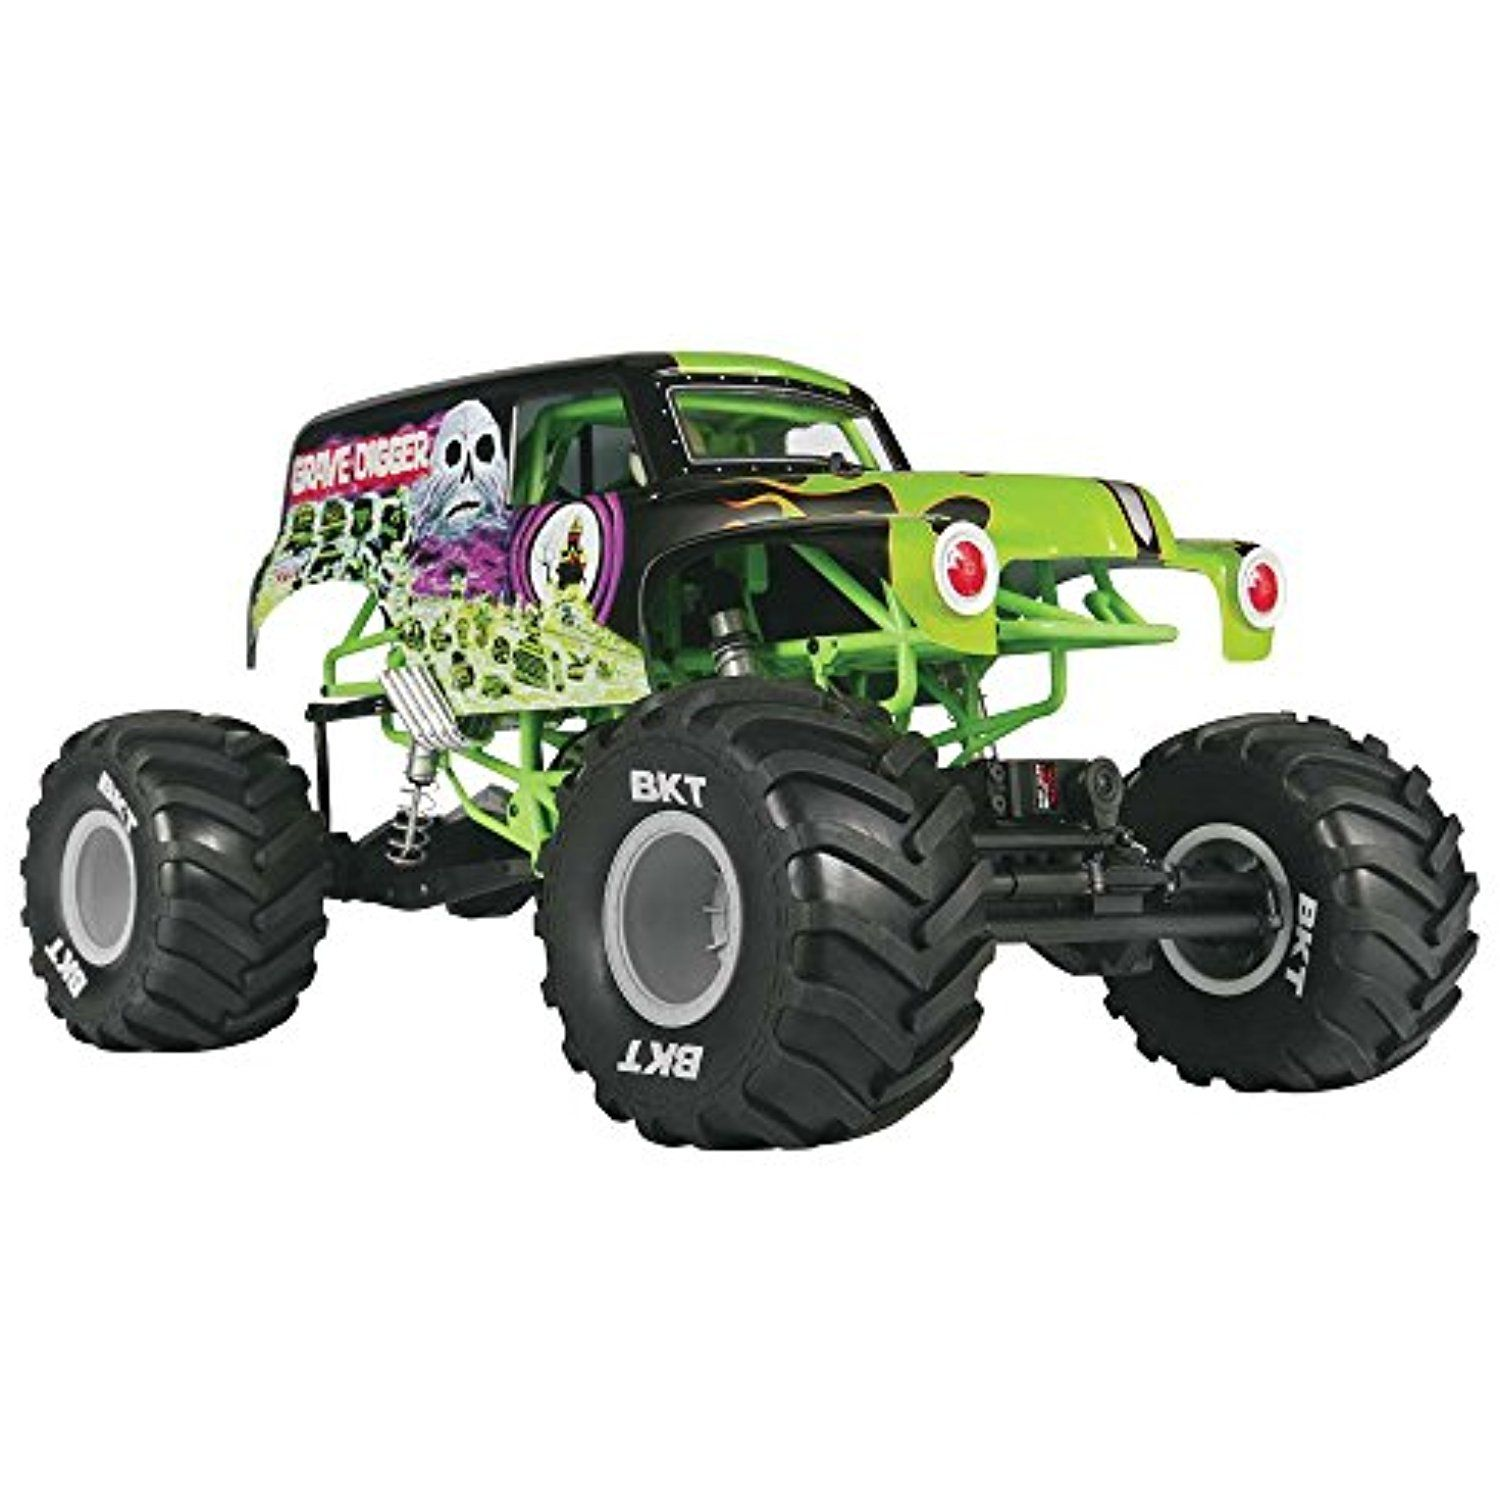 AXIAL AX90055 SMT10 1/10th Scale Grave Digger Monster Jam ...